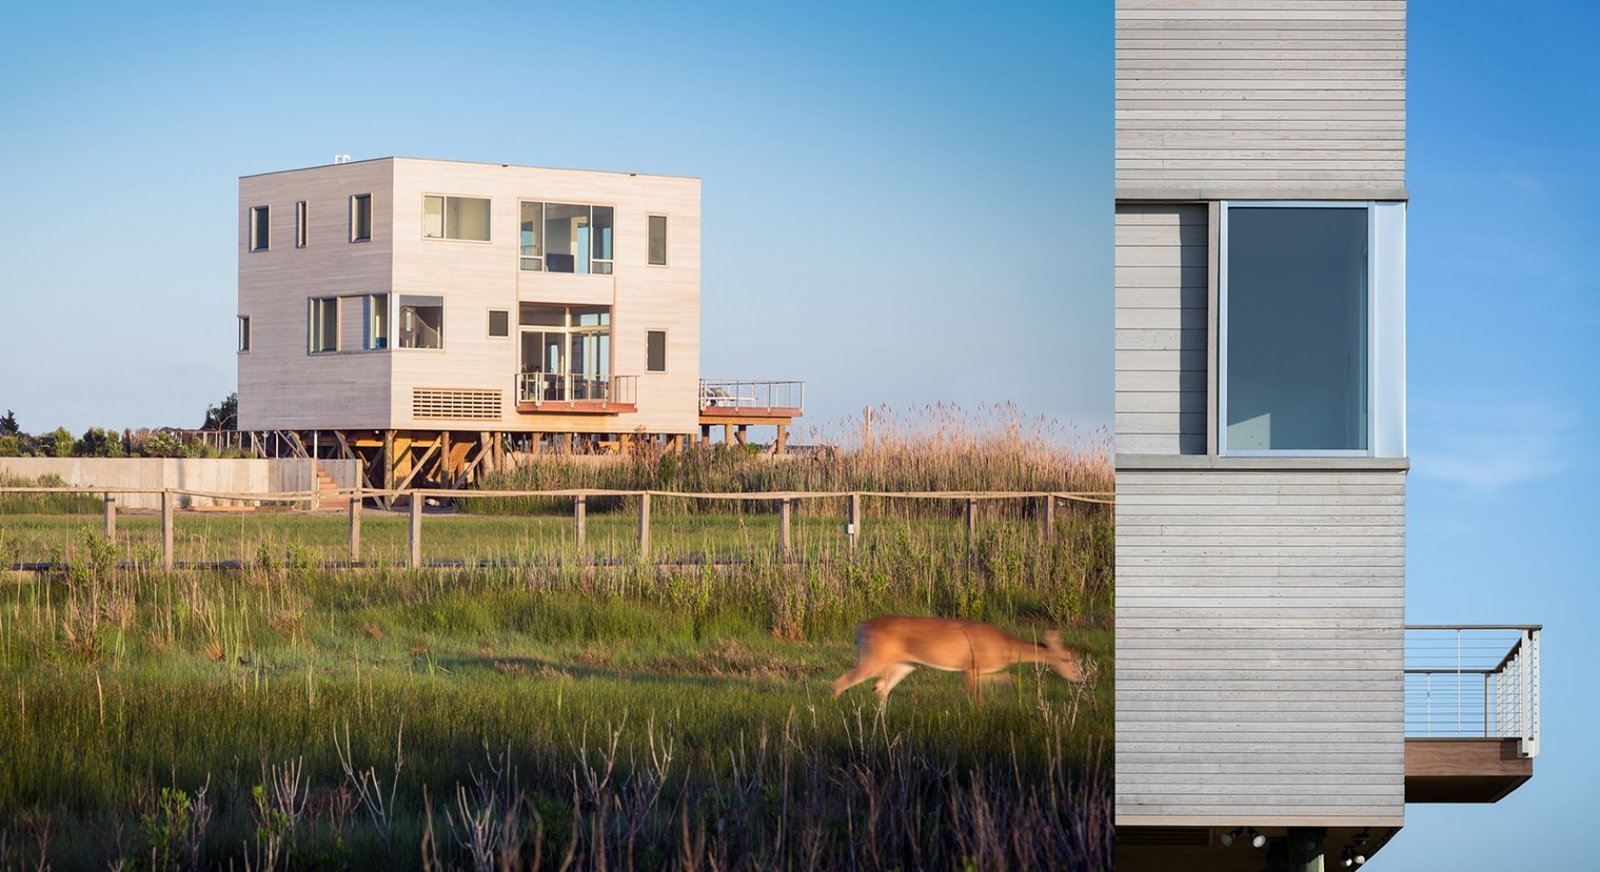 #CubeHouse #modern #cube #exterior #outside #landscape #windows #deck #timber #wetlands #cedar #retreat #privacy #dynamic #naturallighting #Westhamptonbeach #NewYork #LeroyStreetStudio   Cube House by Leroy Street Studio